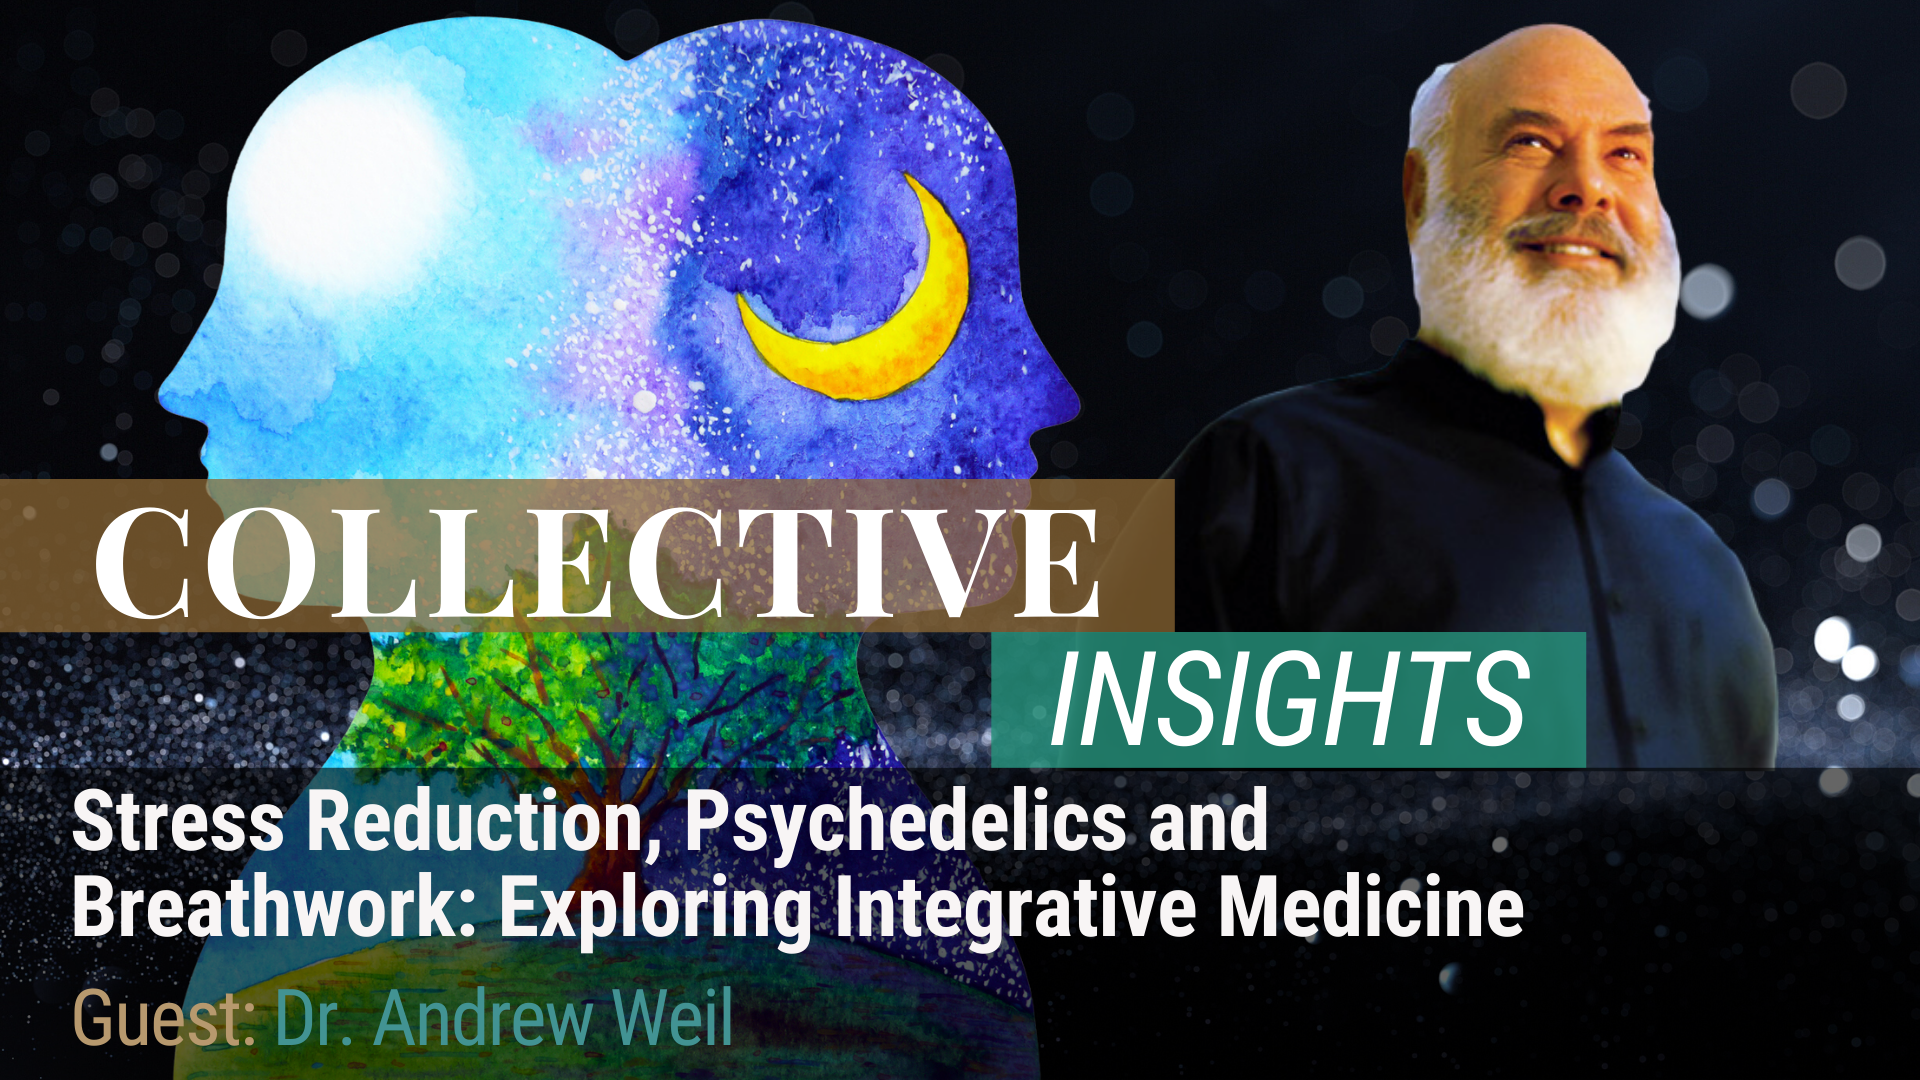 Stress Reduction, Psychedelics and Breathwork: Exploring Integrative Medicine